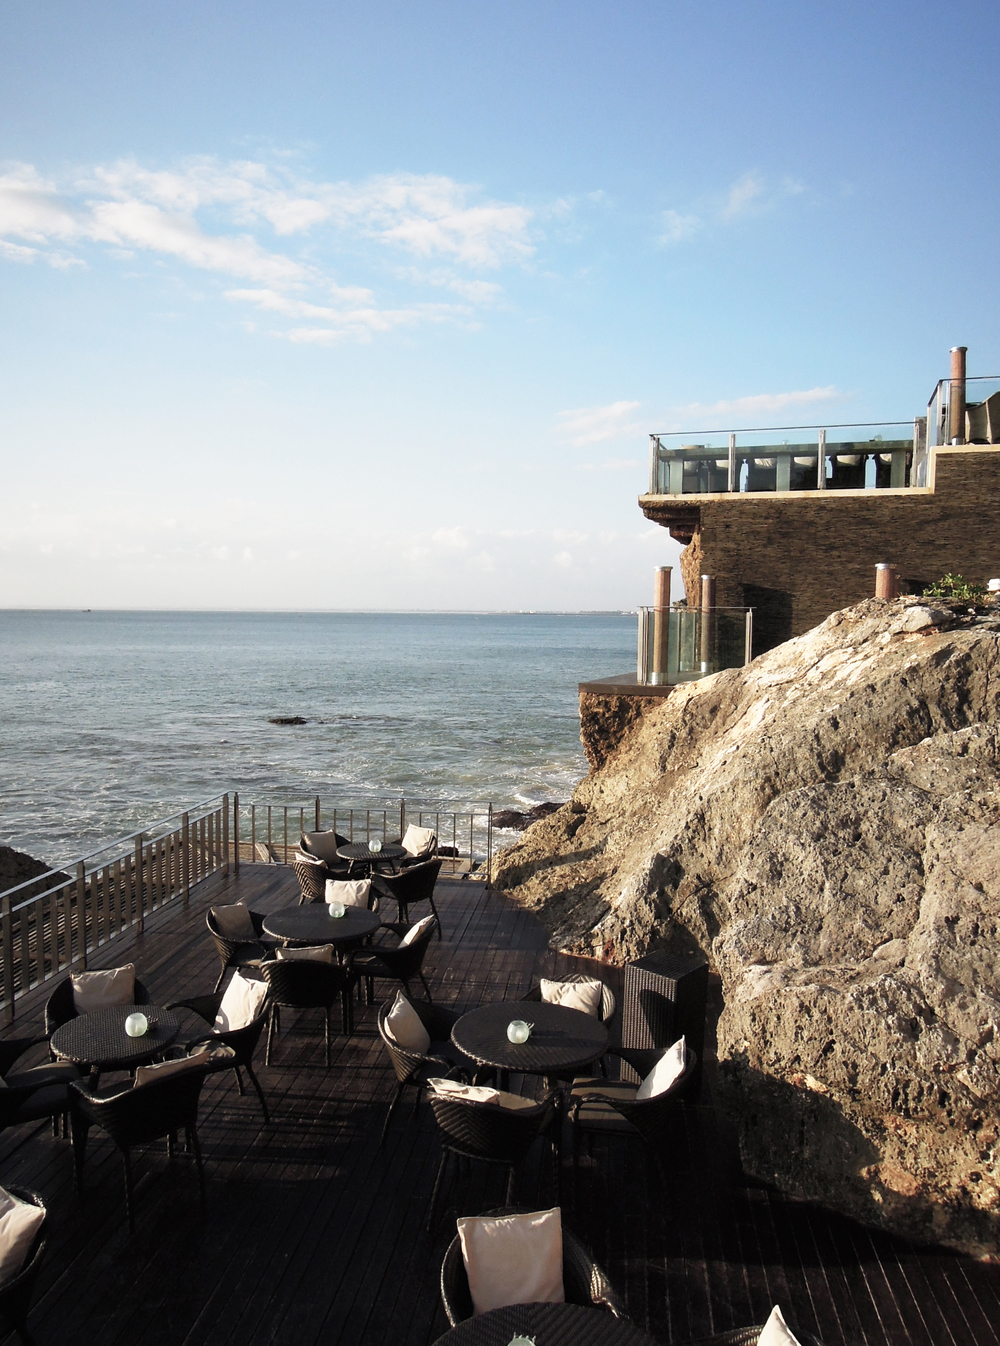 The Awe Inspiring Ocean View And The Majestic Sun Set Does Make This Place  One Of The Must Go To Destinations In Bali. The Main Bar Is Perched On Top  Of A ...